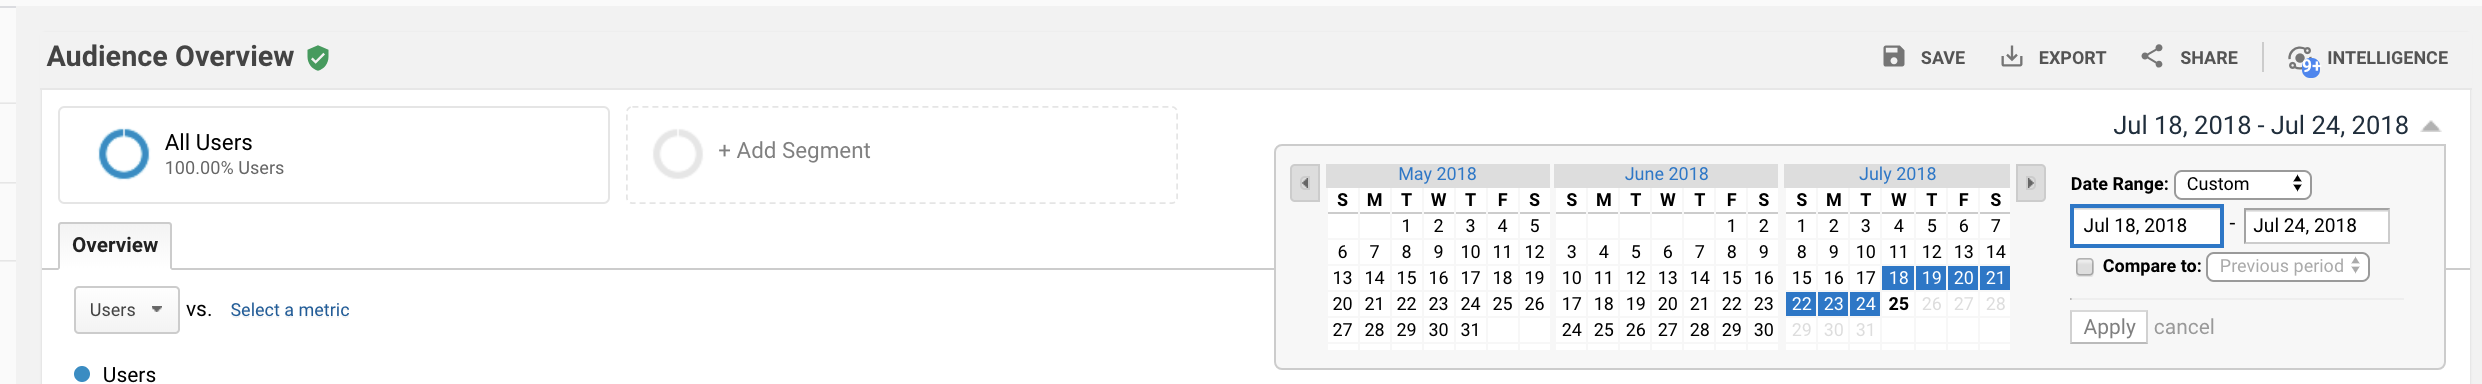 google+analytics+change+date.png